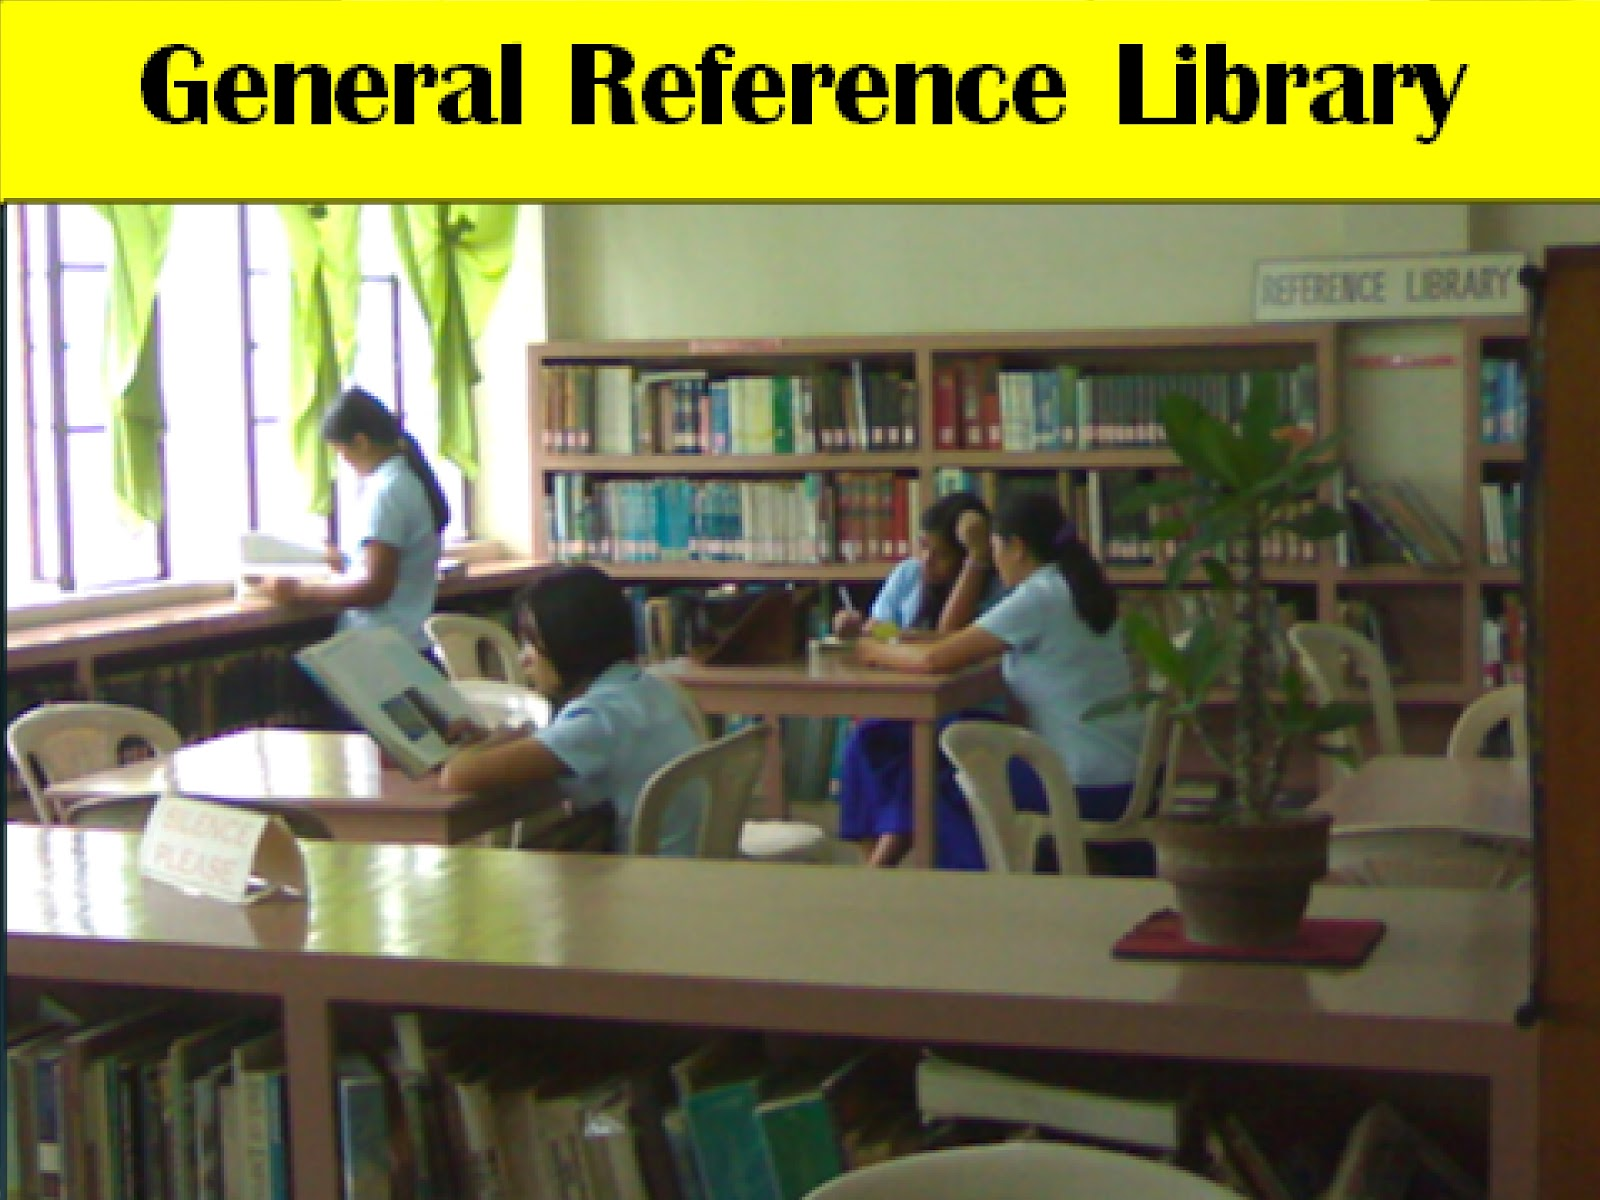 The General Reference Library Is A Collection Of Encyclopedias, Almanacs,  Dictionaries, Yearbooks, Atlases, Maps, Charts, Posters And Pictures,